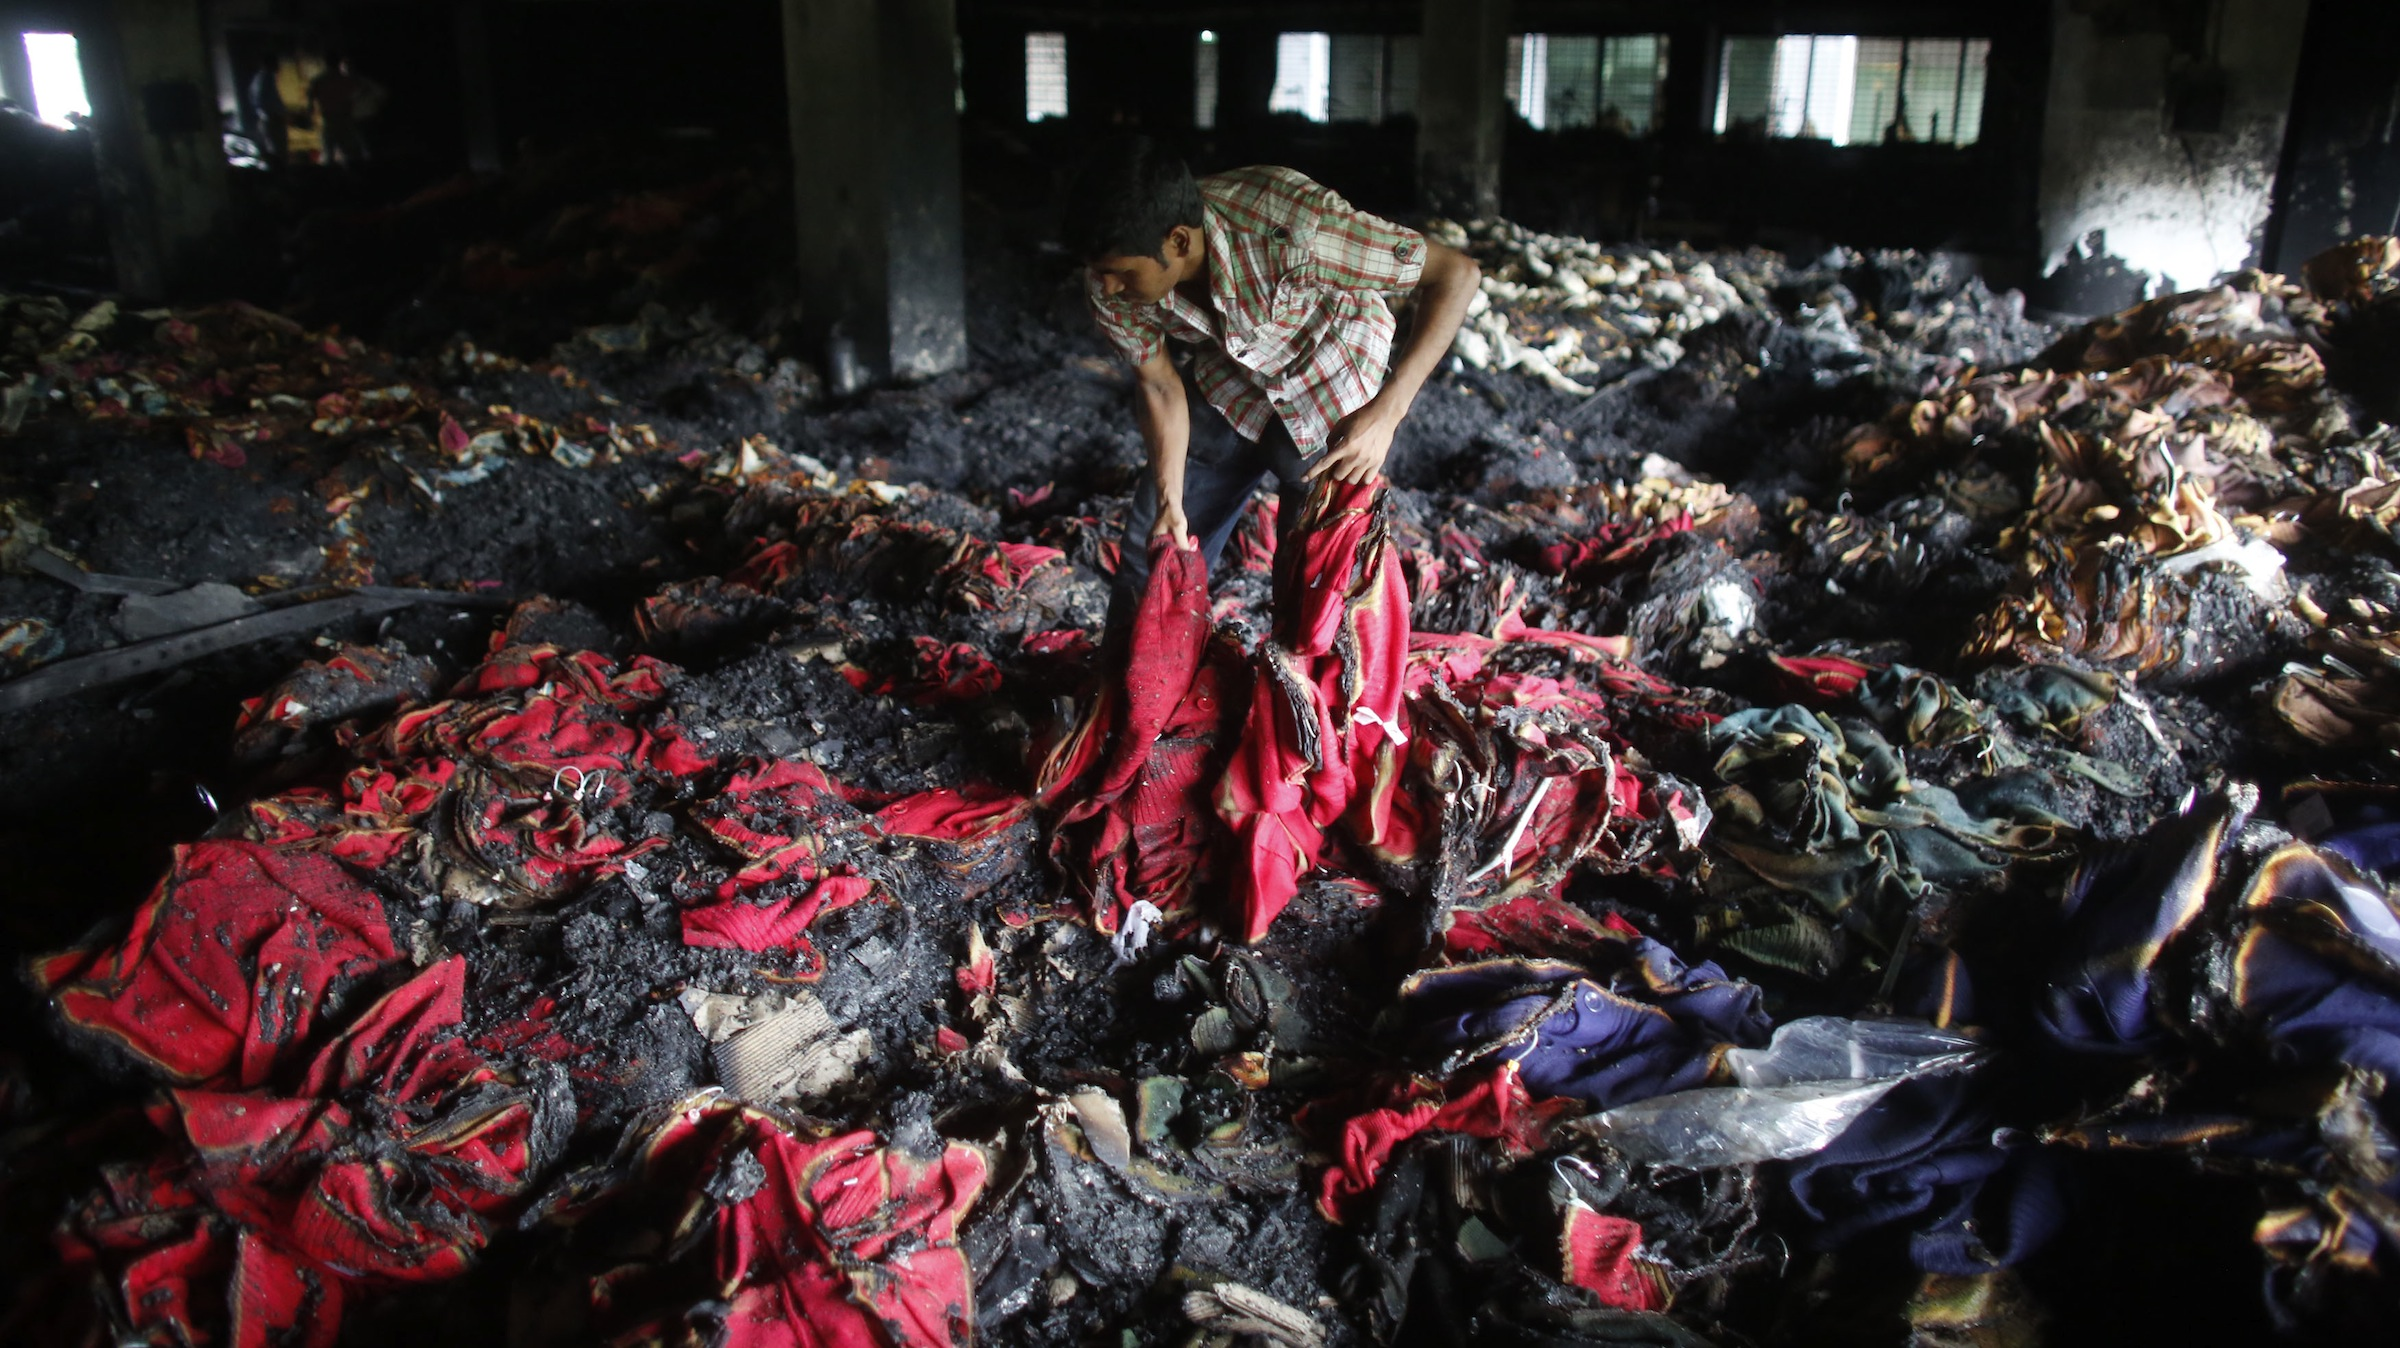 A garment worker inspects a factory belonging to Tung Hai Group, a large garment exporter, after a fire in Dhaka May 9, 2013. Eight people were killed when the fire swept through the garment factory in an industrial district of the Bangladeshi capital Dhaka, police and an industry association official said on Thursday. REUTERS/Andrew Biraj (BANGLADESH - Tags: DISASTER BUSINESS TEXTILE) - RTXZFV5